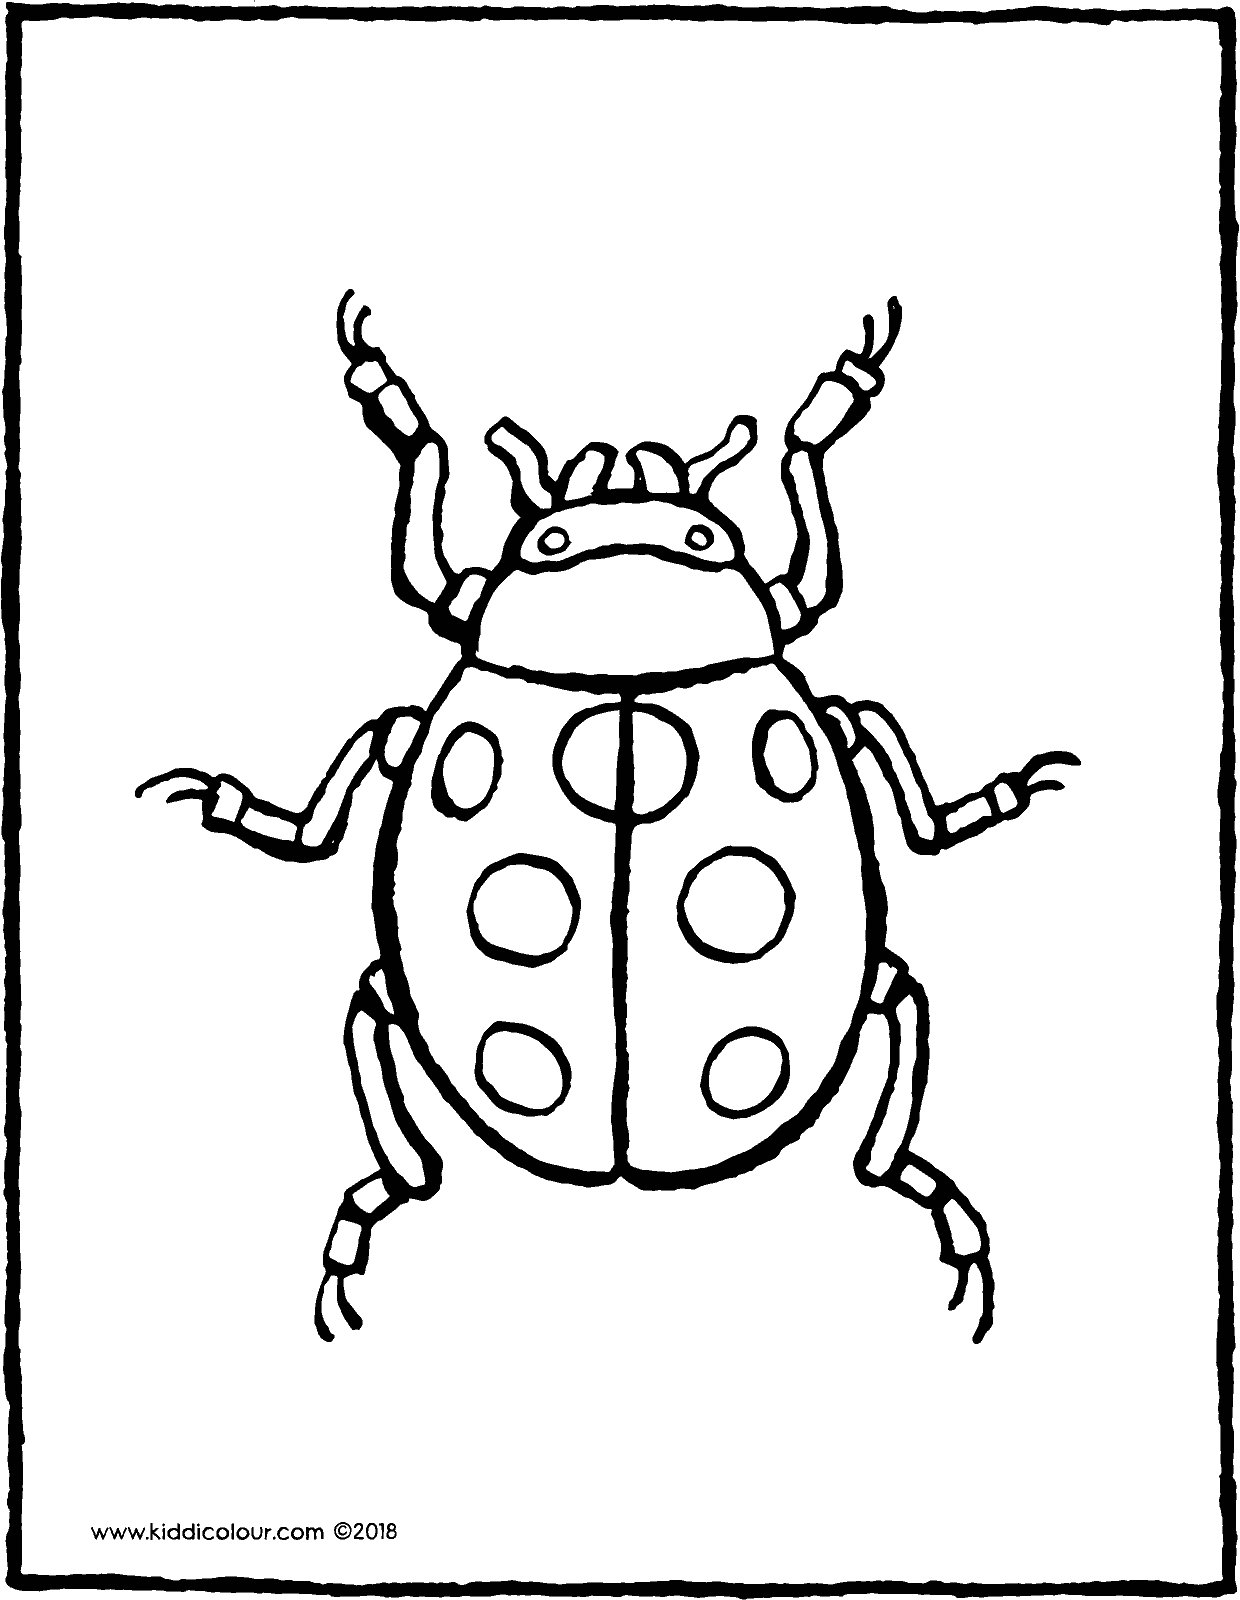 ladybird colouring page ladybug coloring pages to download and print for free page colouring ladybird